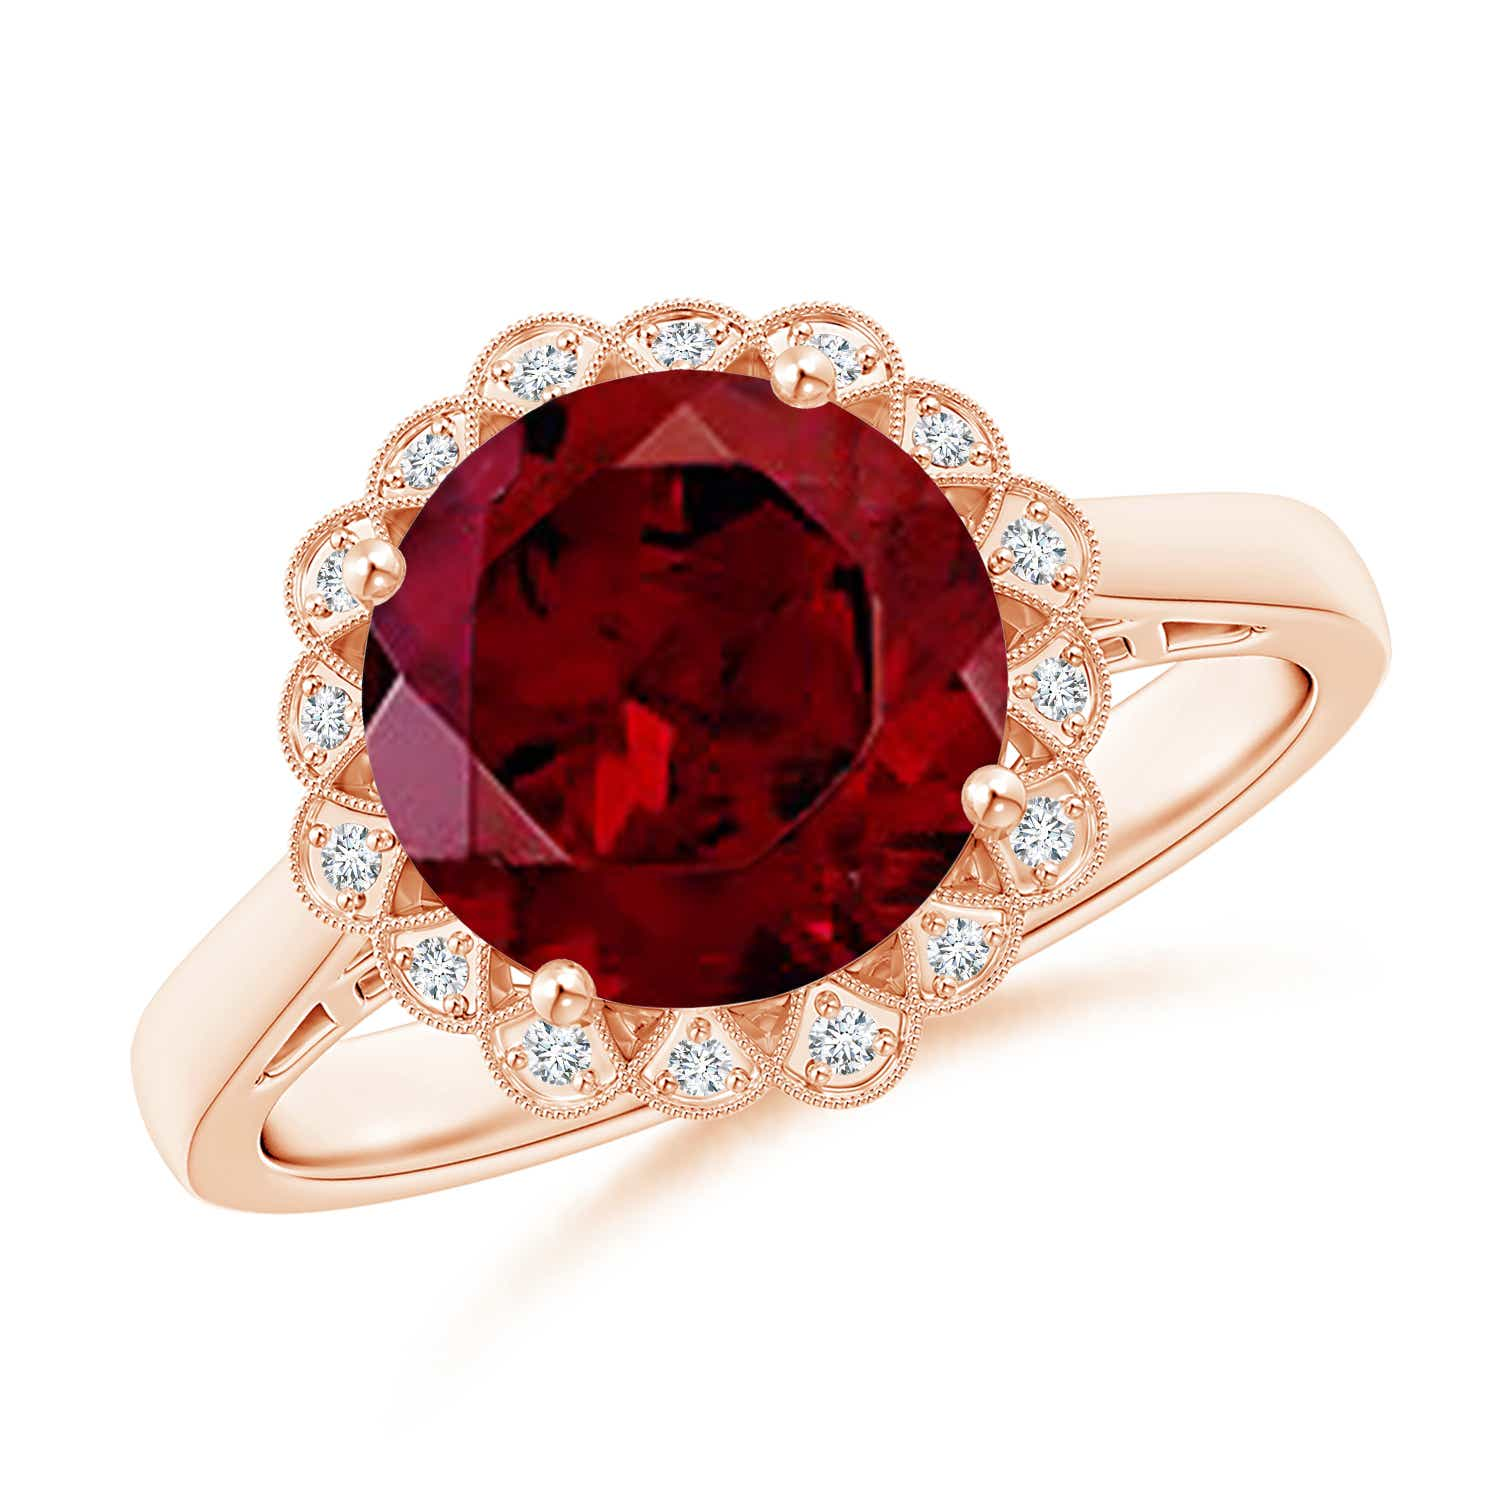 Angara Garnet Cocktail Ring in Rose Gold NLWRraYZ